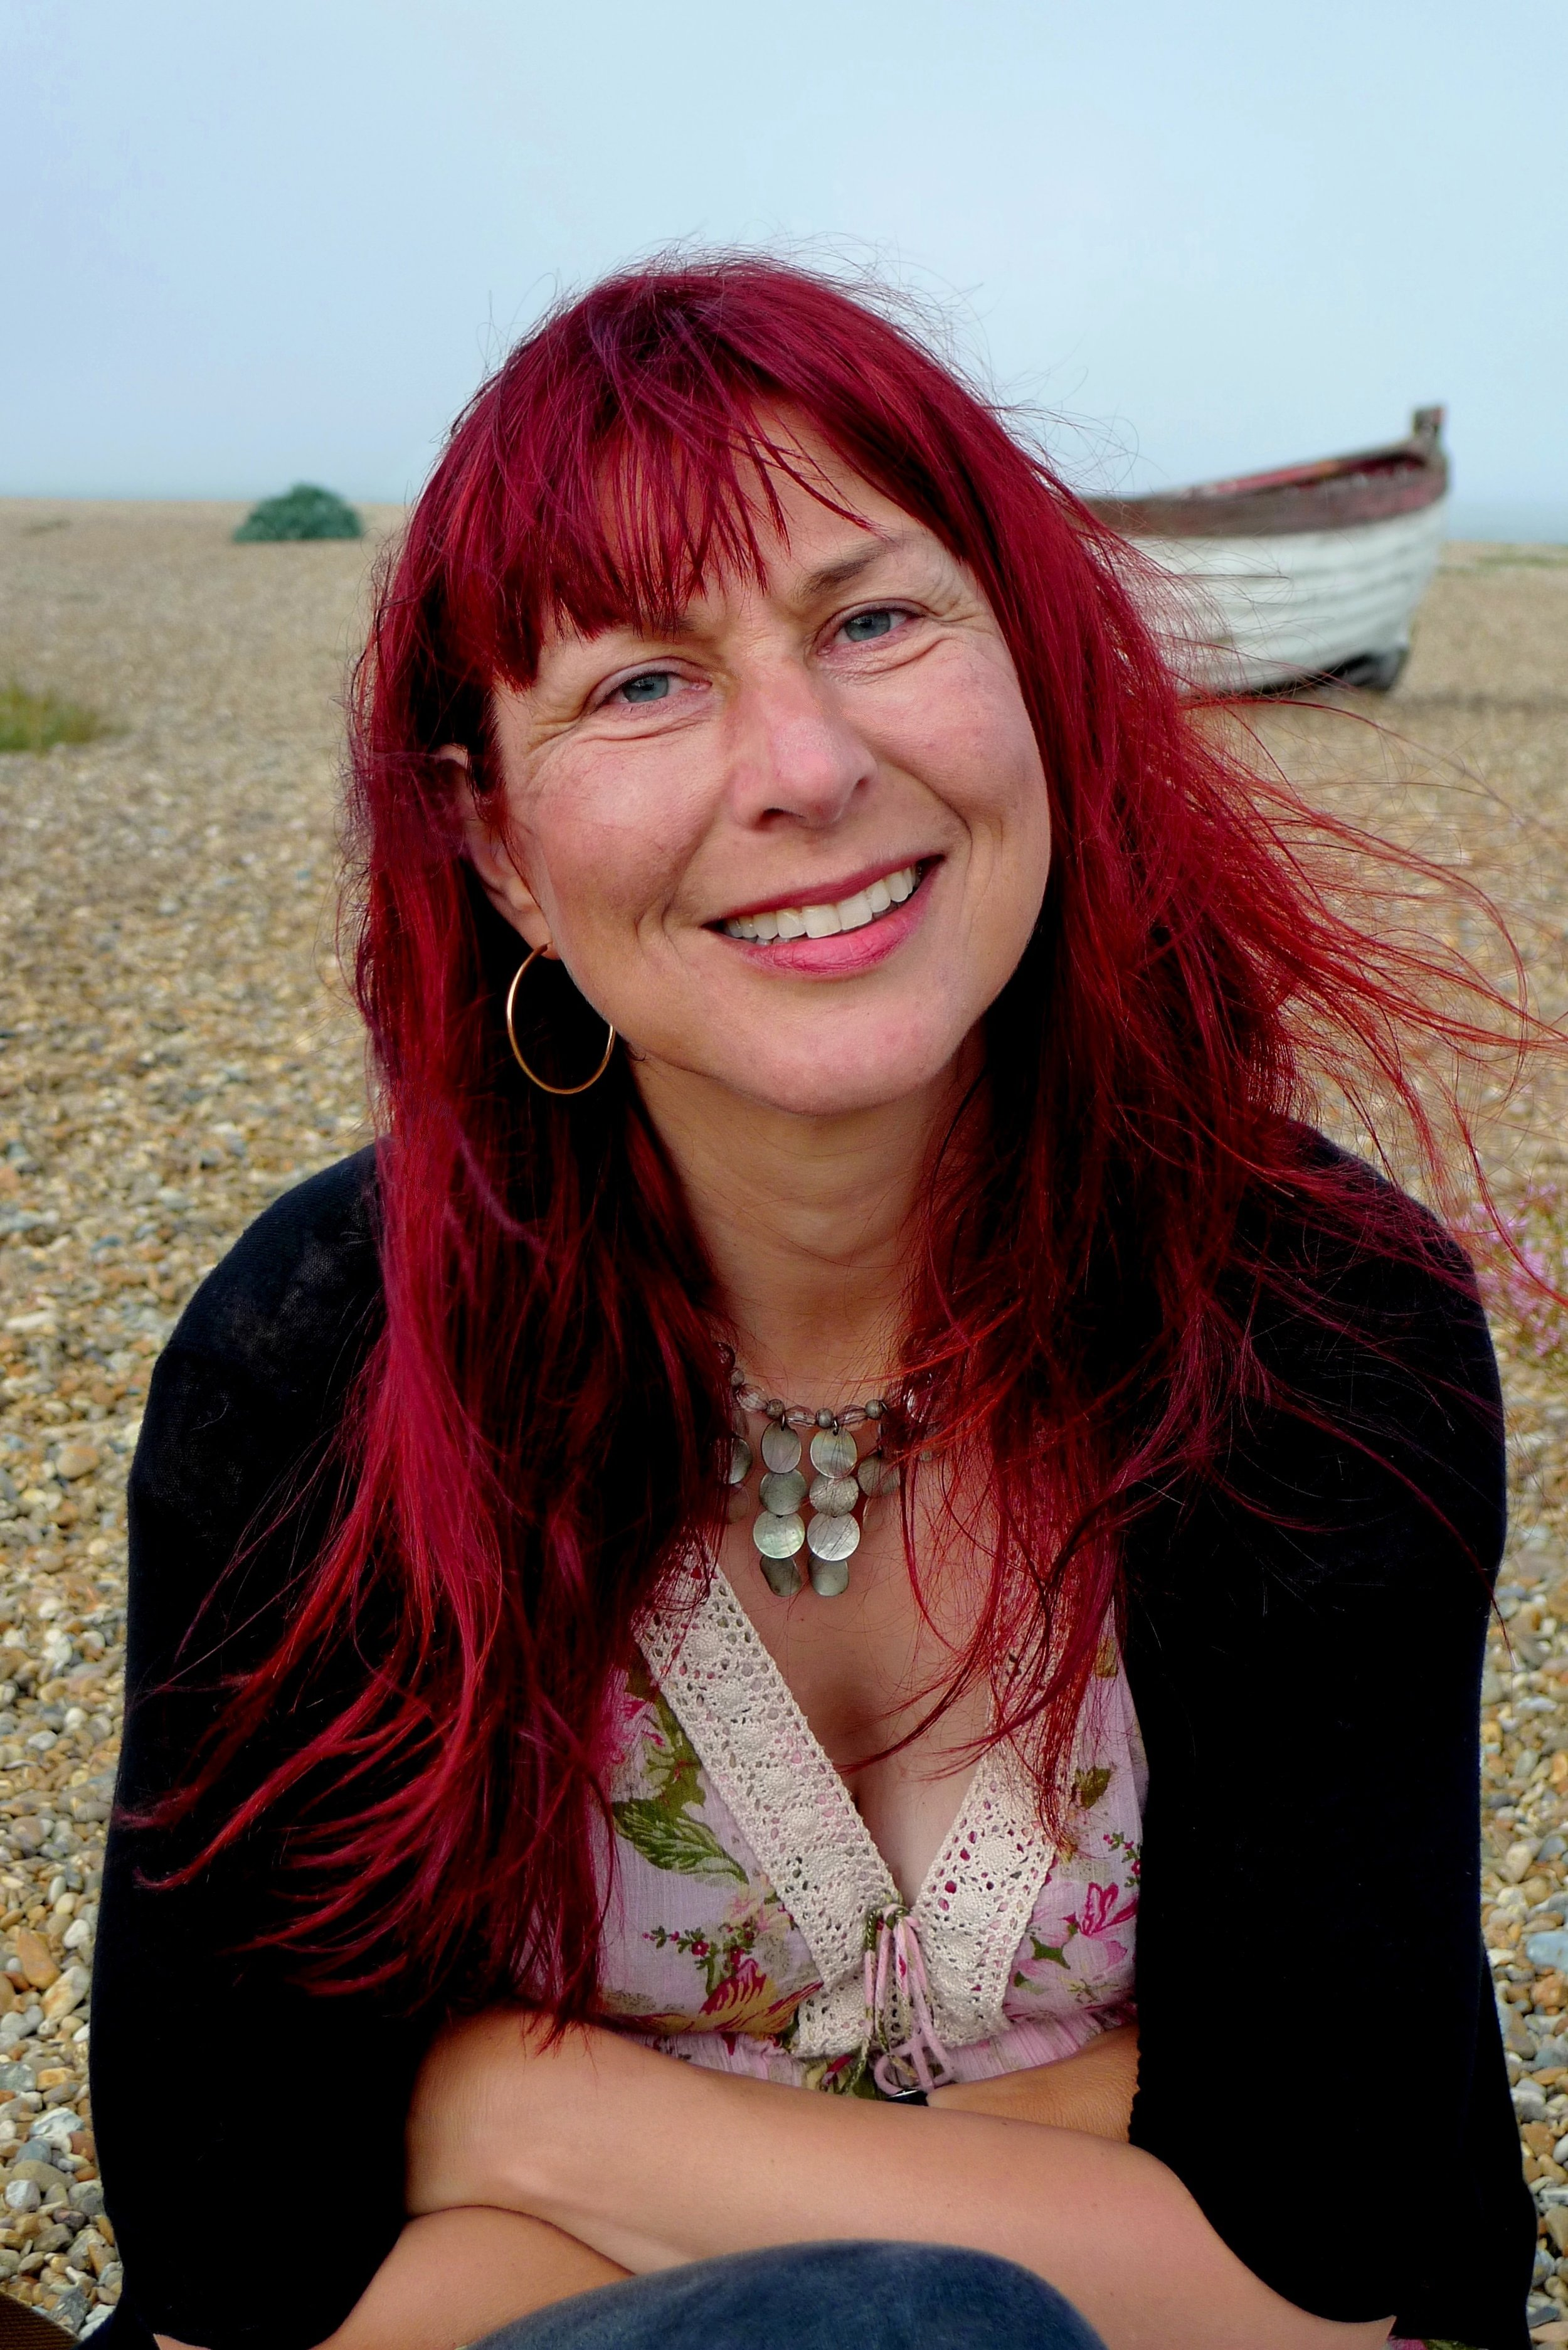 Judith Bridgland I was born in Australia, but I now live in Scotland. I don't have a Suffolk connection specifically, except that I paint and exhibit regularly in galleries in Suffolk generally, and Aldeburgh in particular. I have also painted quite a bit at Walberswick, where Charles Rennie Mackintosh painted (Mackintosh was born and worked here in Glasgow). I am currently working on a commission for a body of work including the cover of a new biography of Sir Michael Tippett, based on scenes of the beach at Aldeburgh.